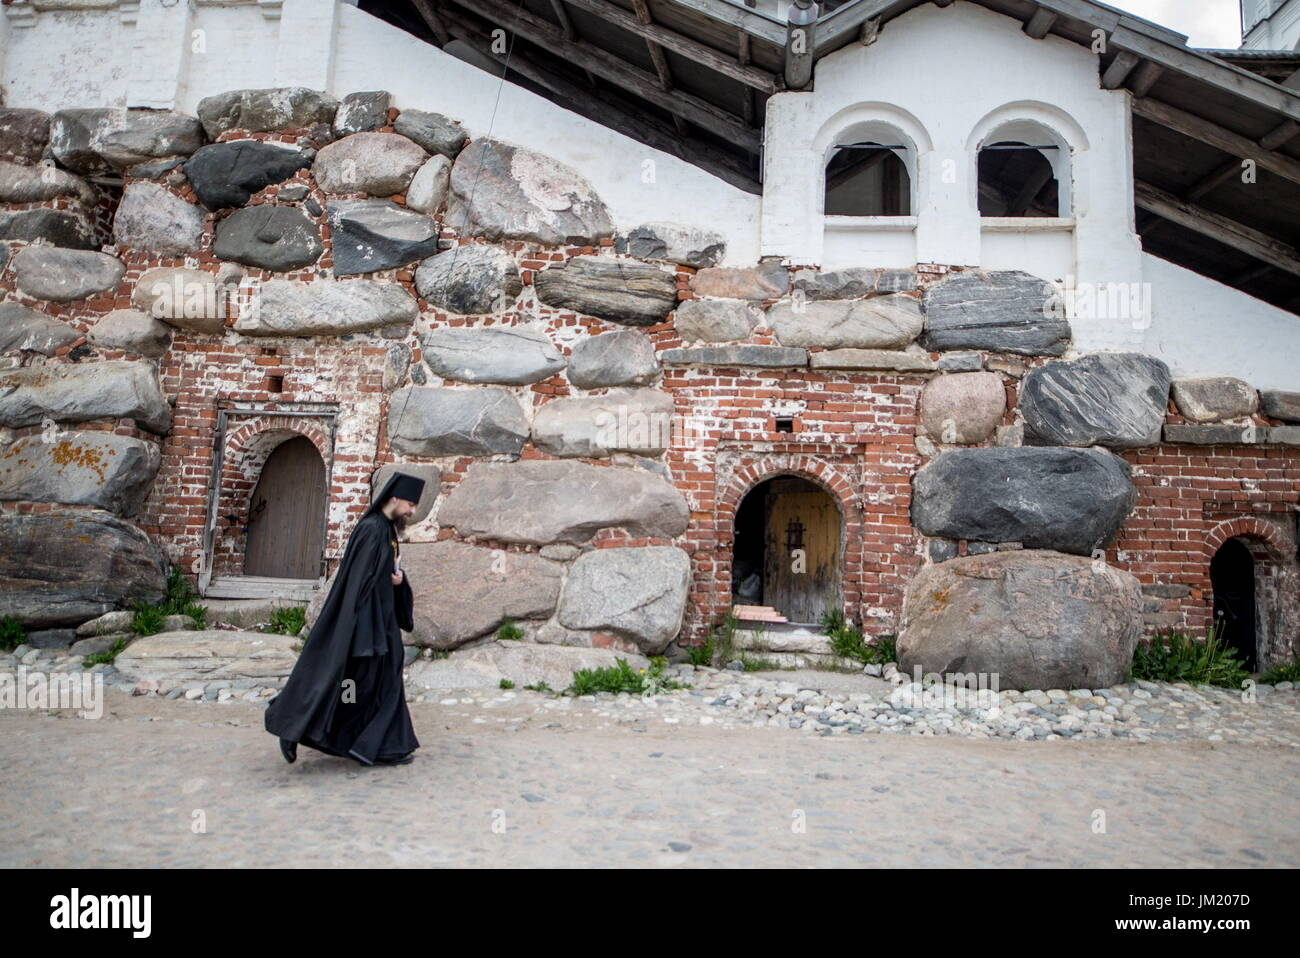 Arkhangelsk Region, Russia. 14th July, 2017. A monk seen at the Solovetsky Monastery situated on the Solovetsky Stock Photo